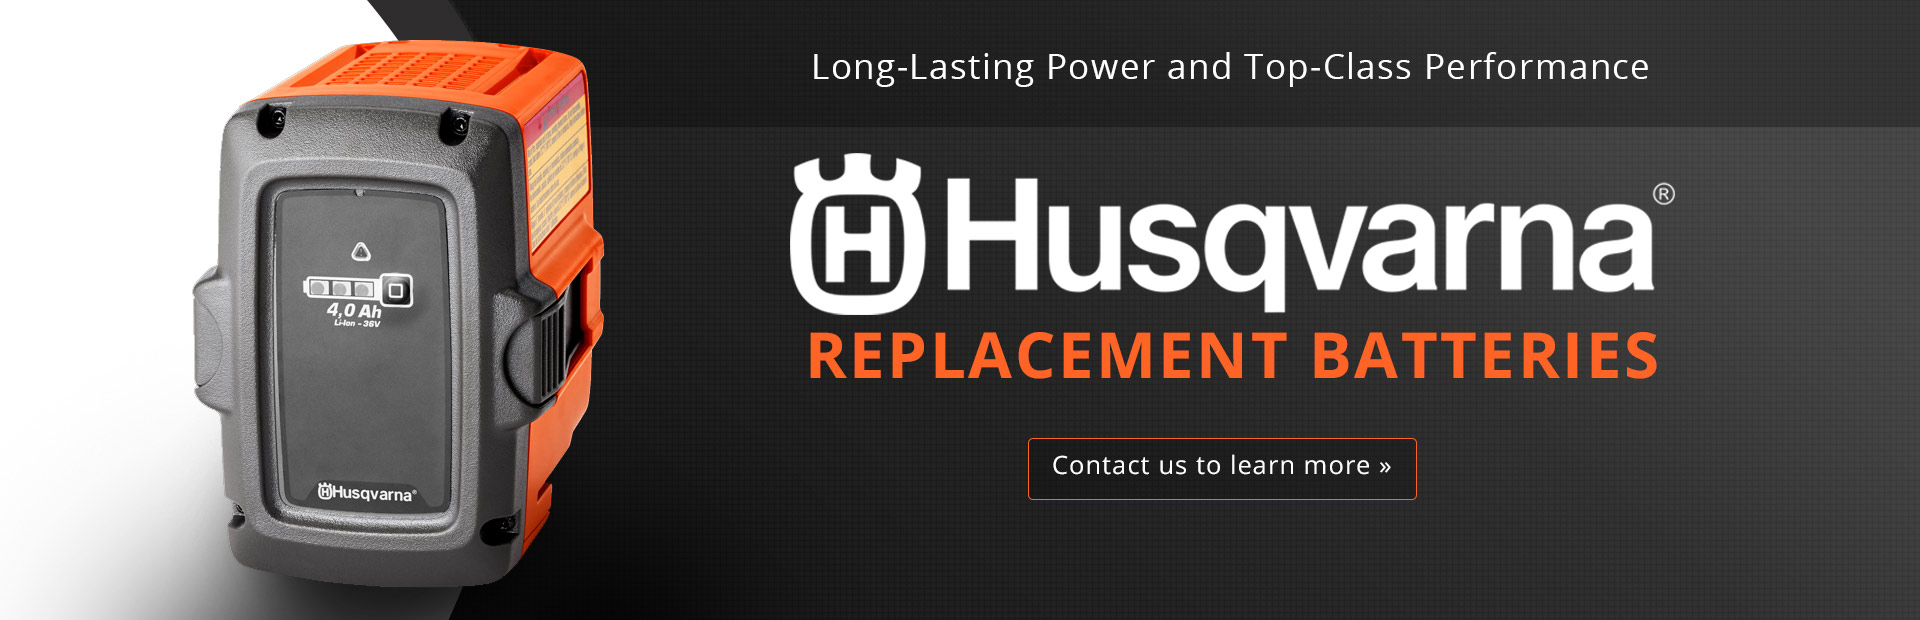 Husqvarna Replacement Batteries: Contact us to learn more.